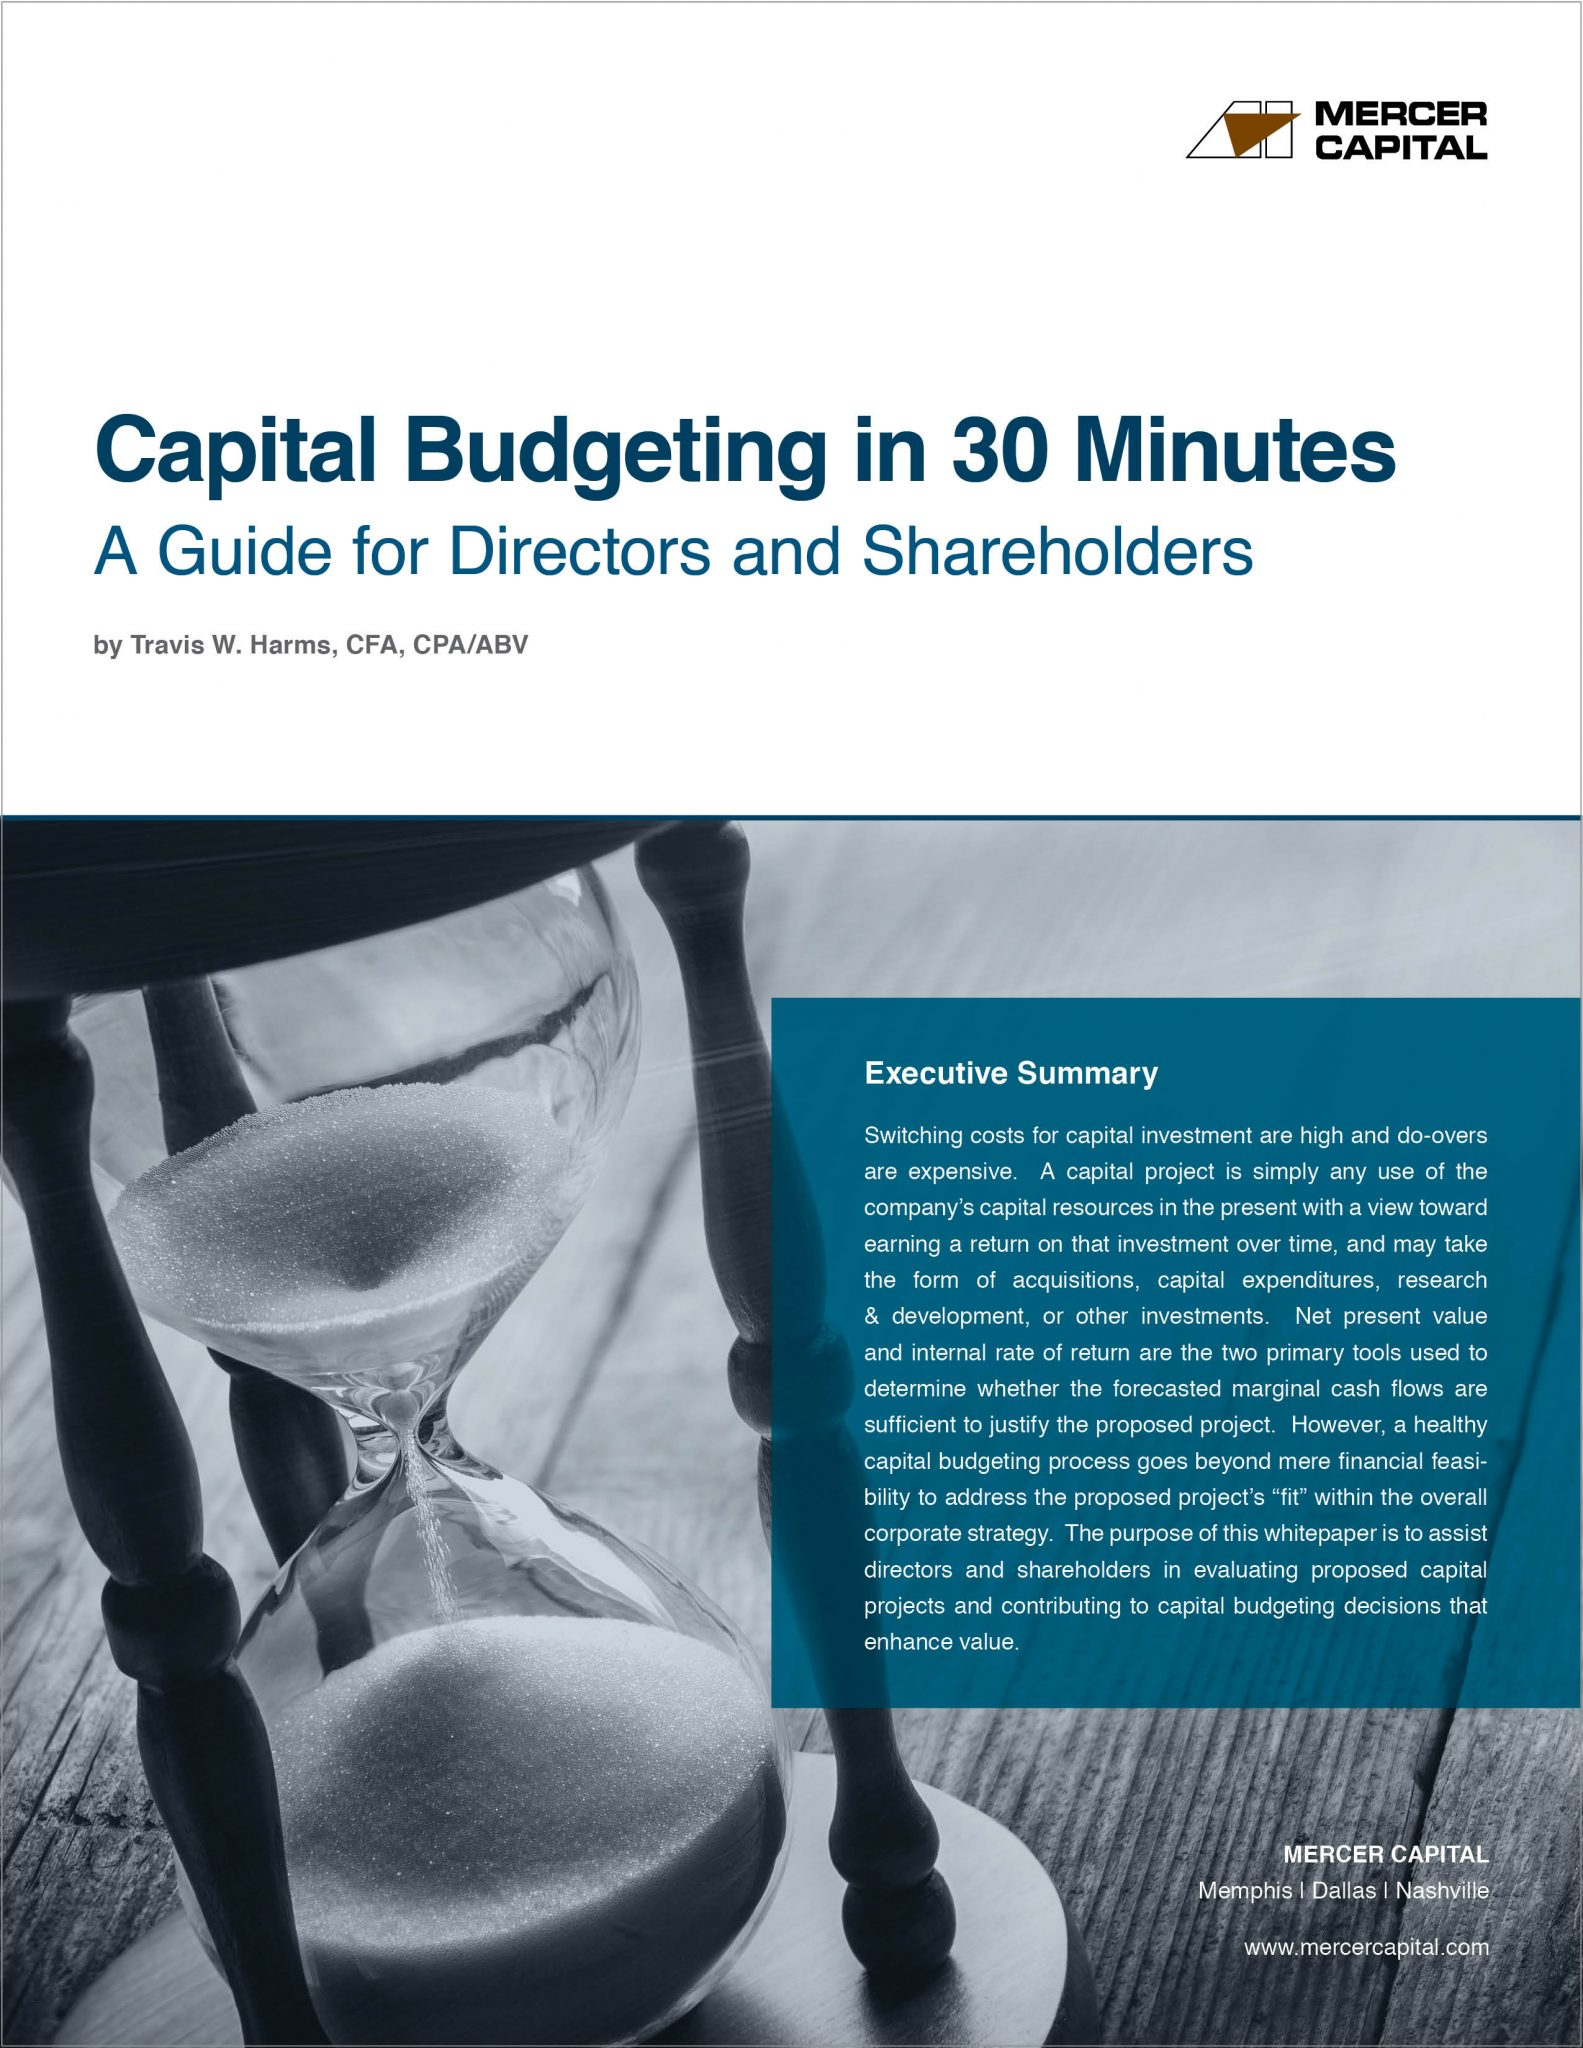 cov_mercer-capital_capital-budgeting-in-30-mins-2016